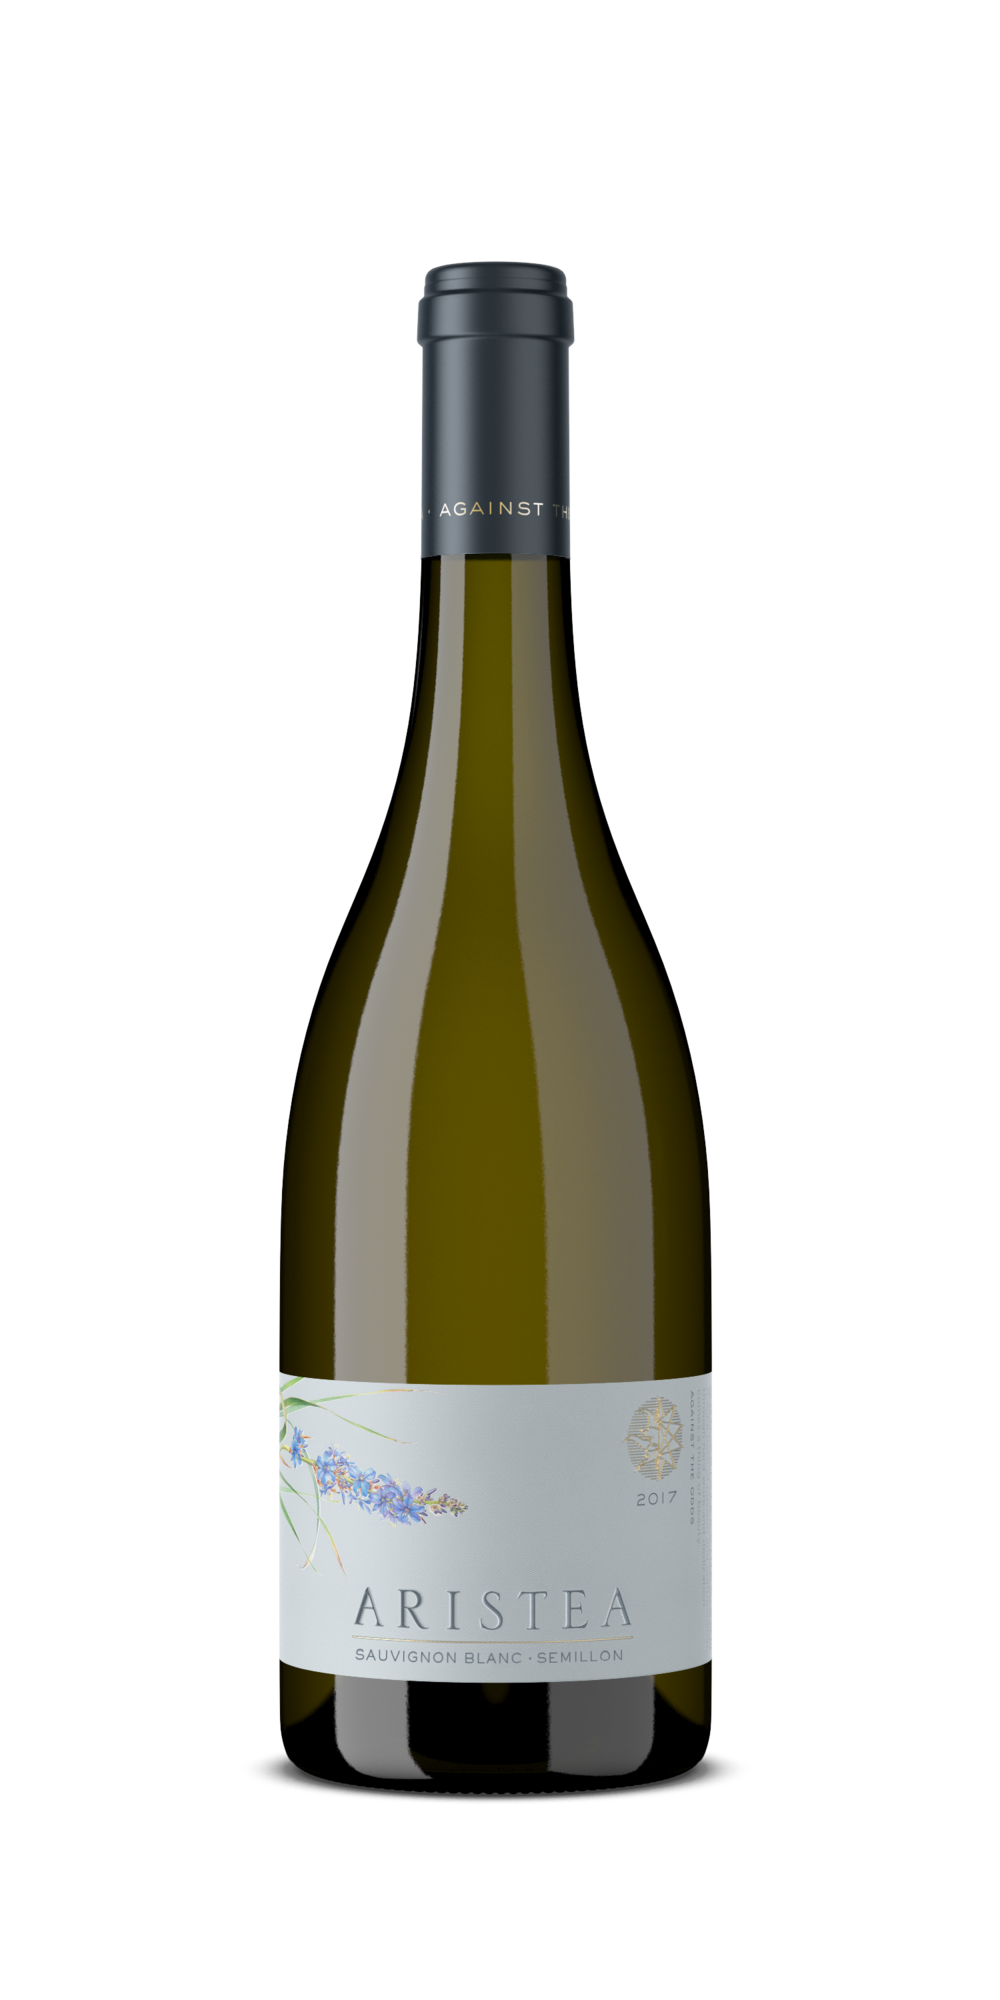 BDcreative-Aristea-SauvSemillon2017.png